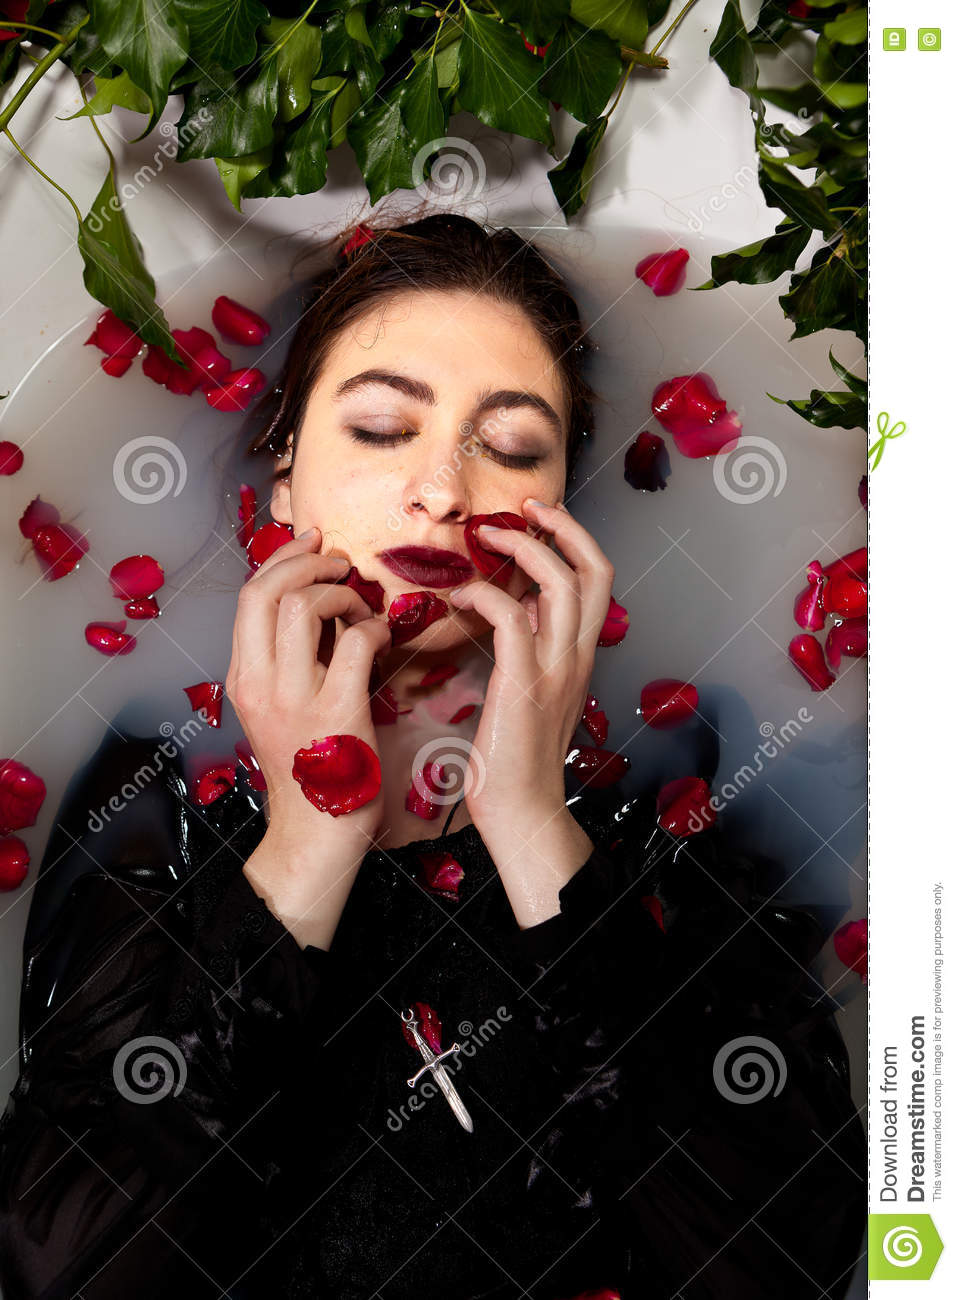 7bdd2e01571 Girl with a black dress enjoying a white milk bath with red leaves of red  roses and ivy